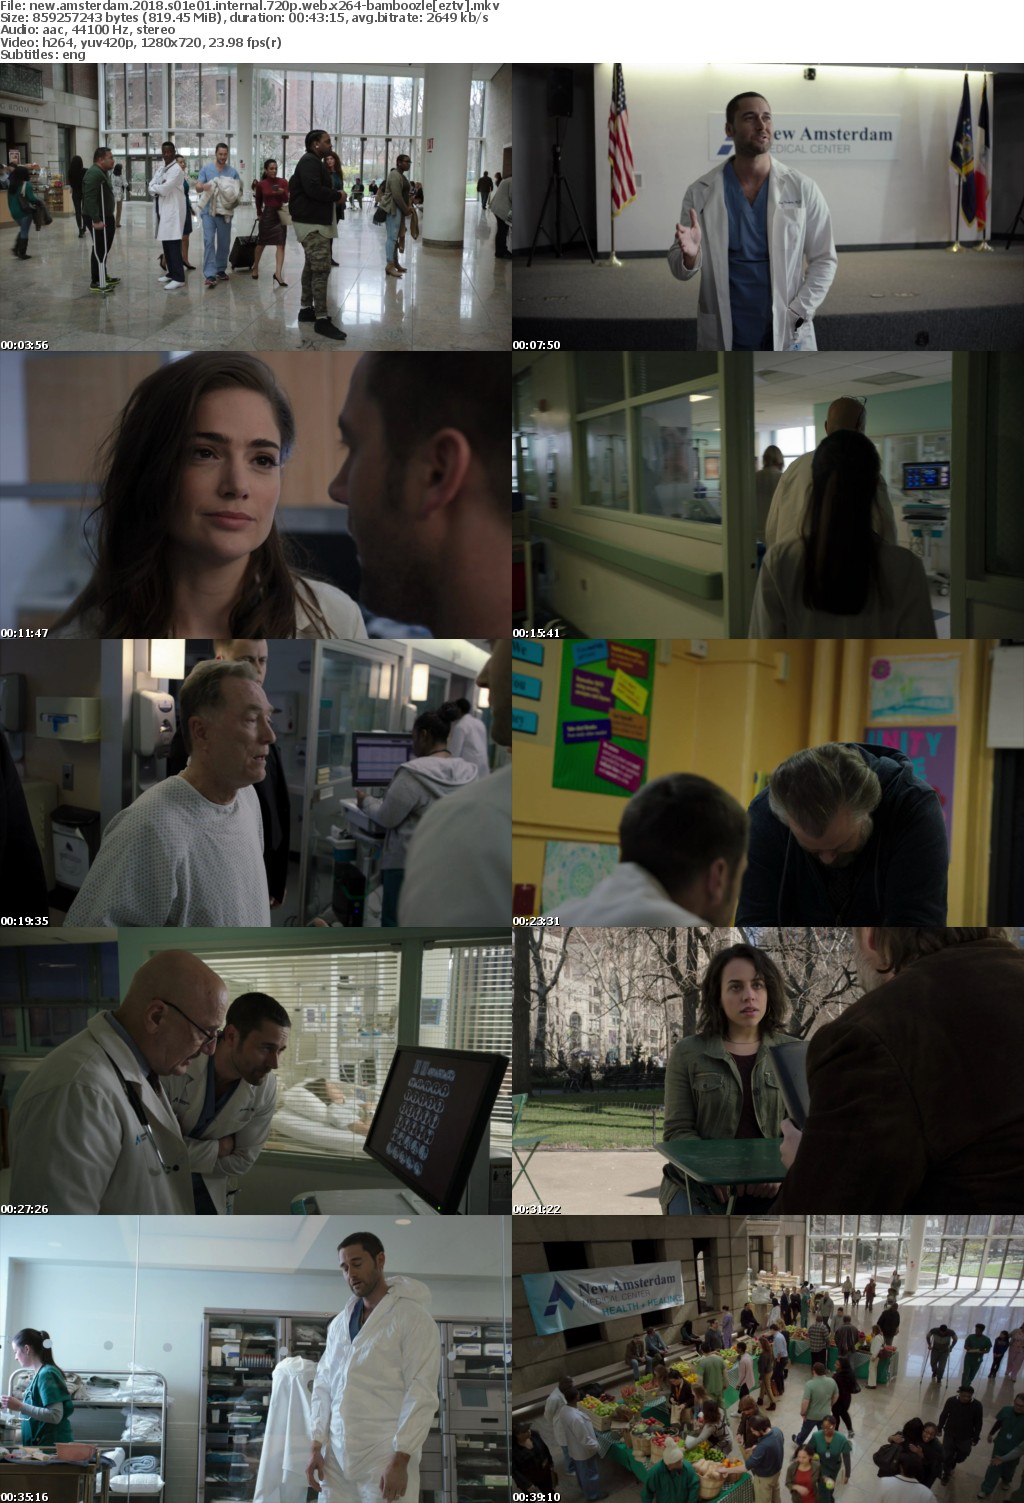 New Amsterdam (2018) S01E01 iNTERNAL 720p WEB x264-BAMBOOZLE